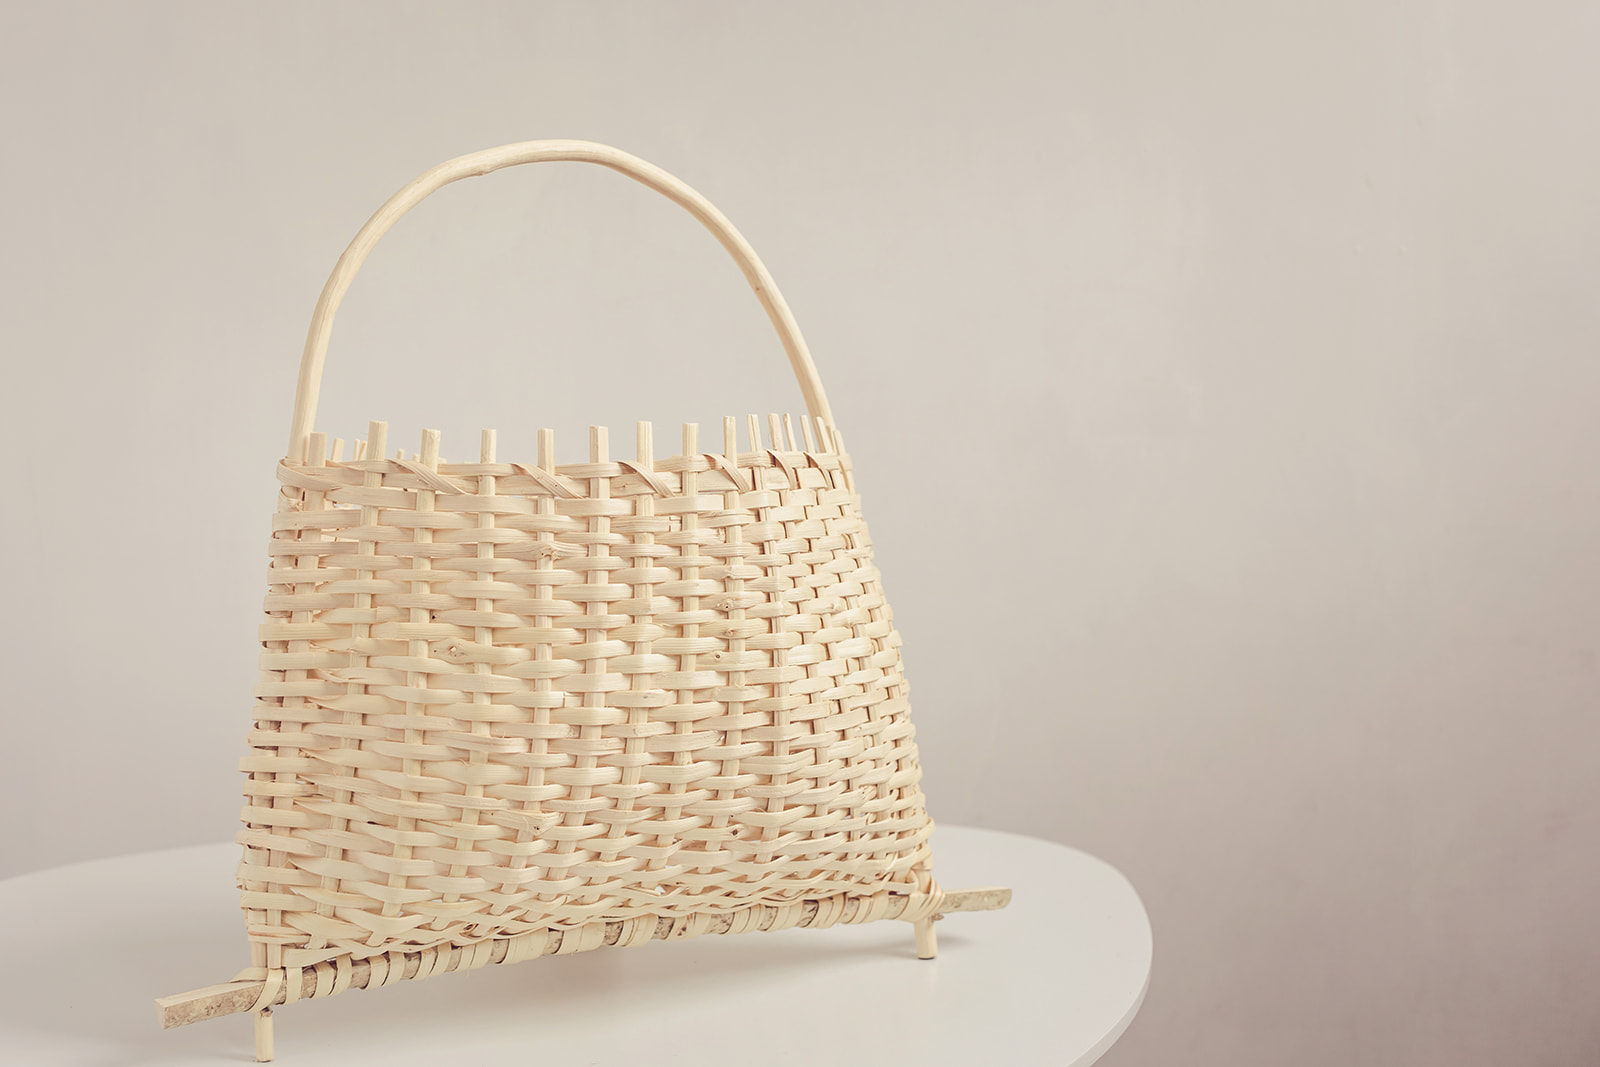 Alba. A Romanian style hazel basket used for picking mountain berries